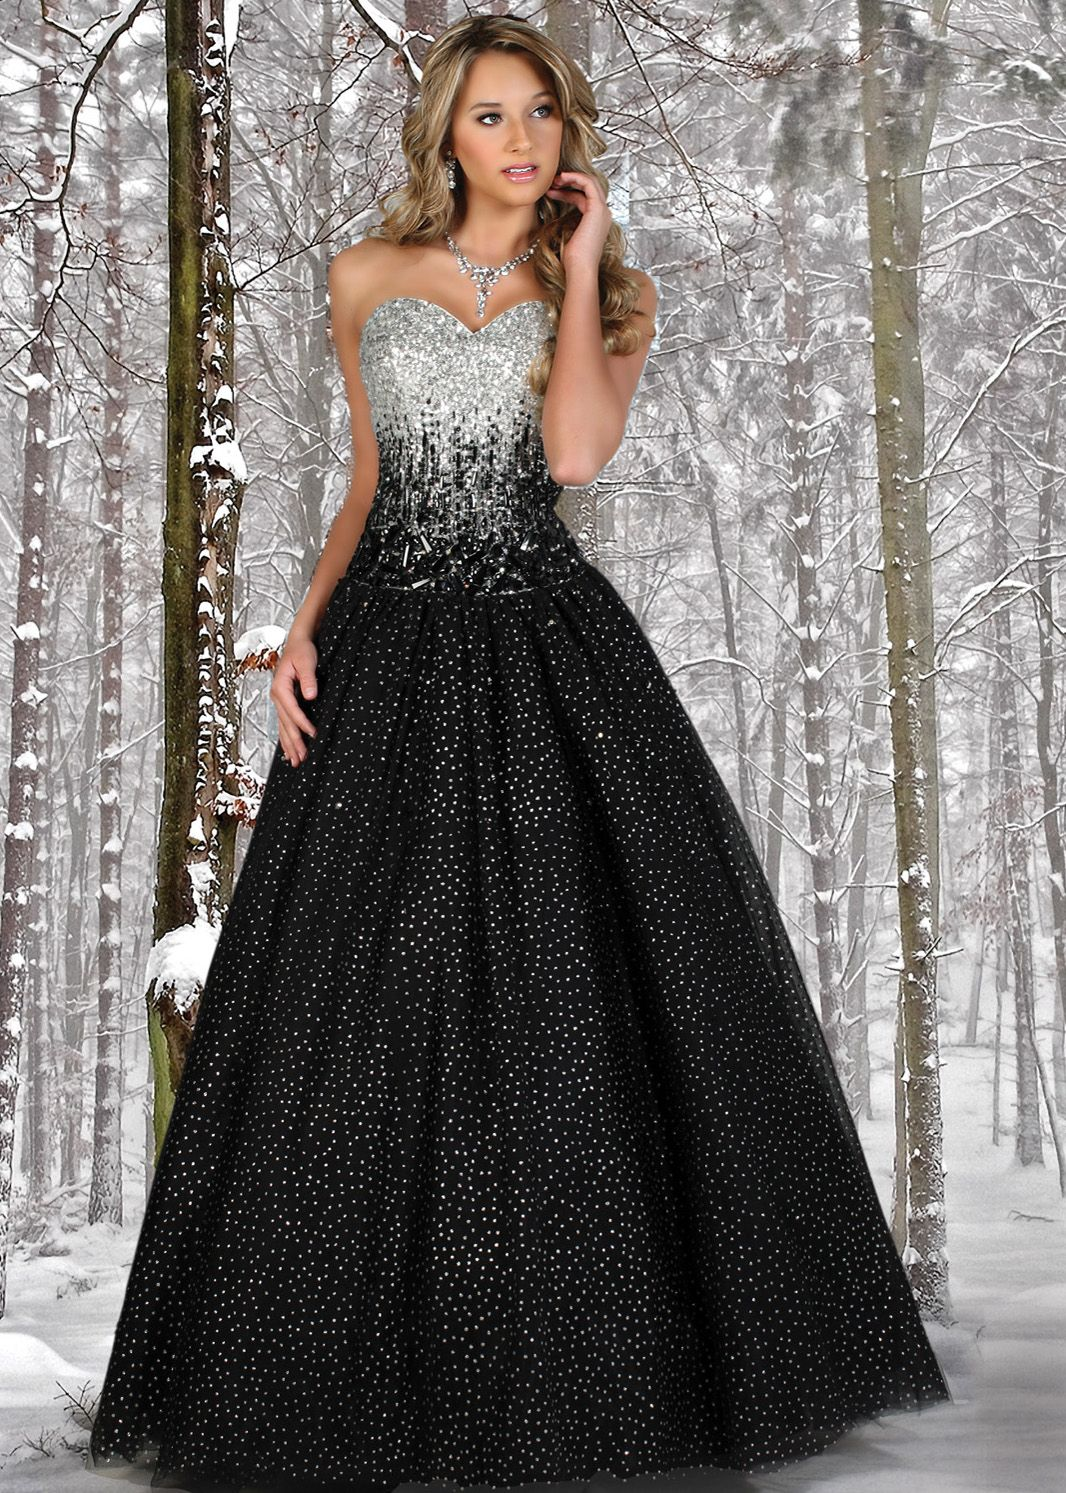 dress - Silver and black sweetheart prom dresses video